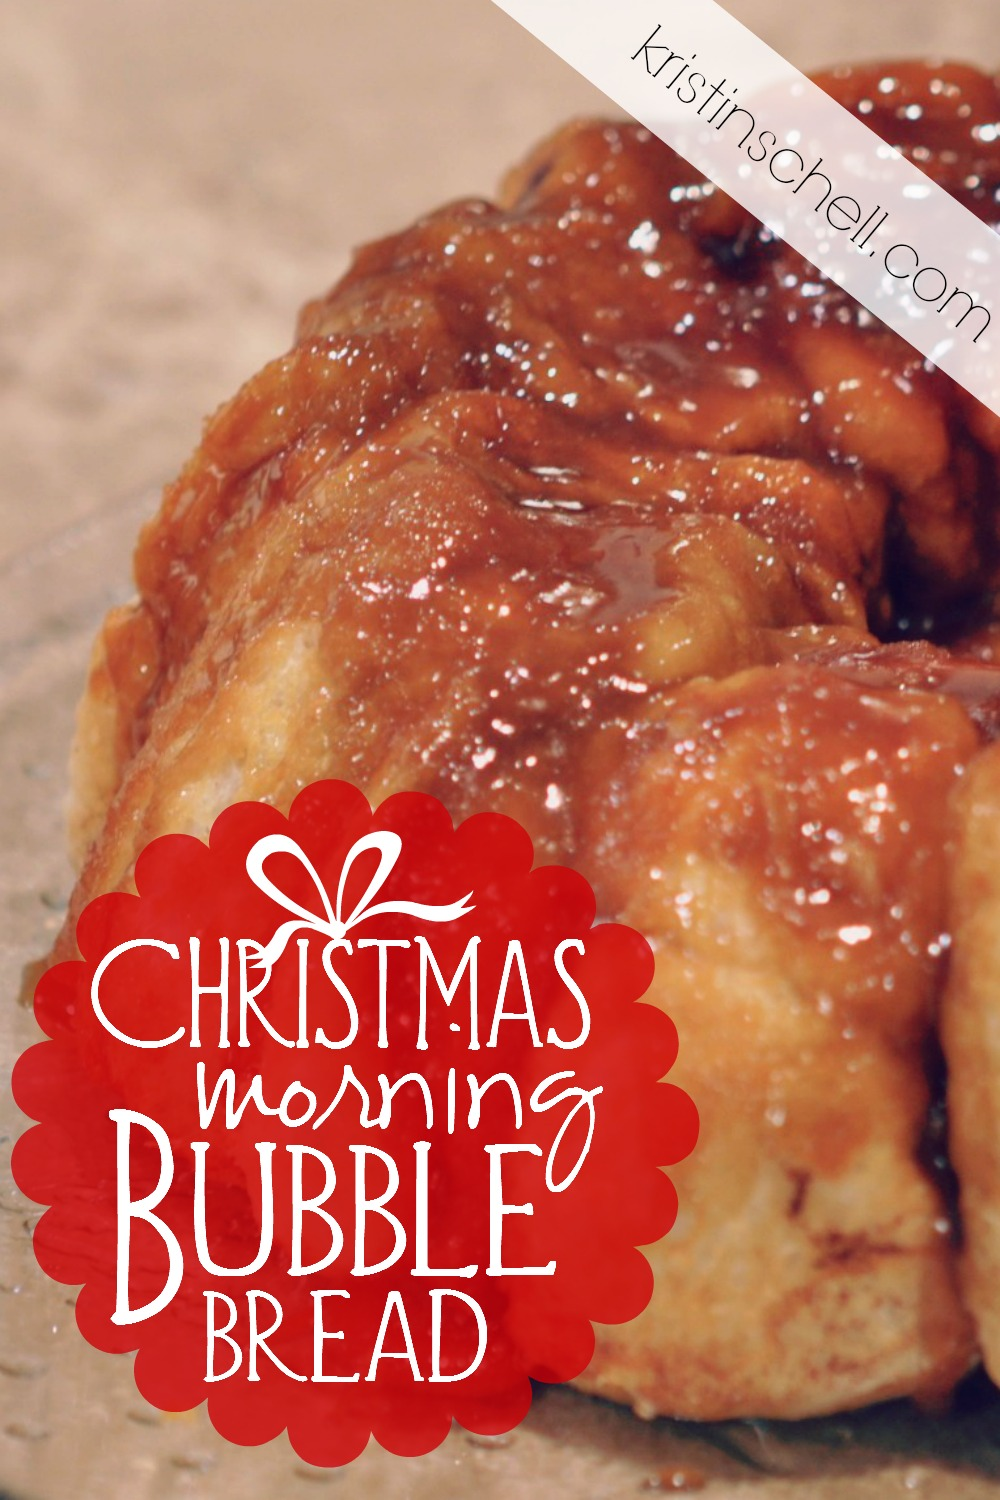 Christmas morning Bubble Bread is a must have at our house every year! This holiday tradition does not take long to prepare, and all the kids look so forward to Santa's arrival and bubble bread on Christmas morning!